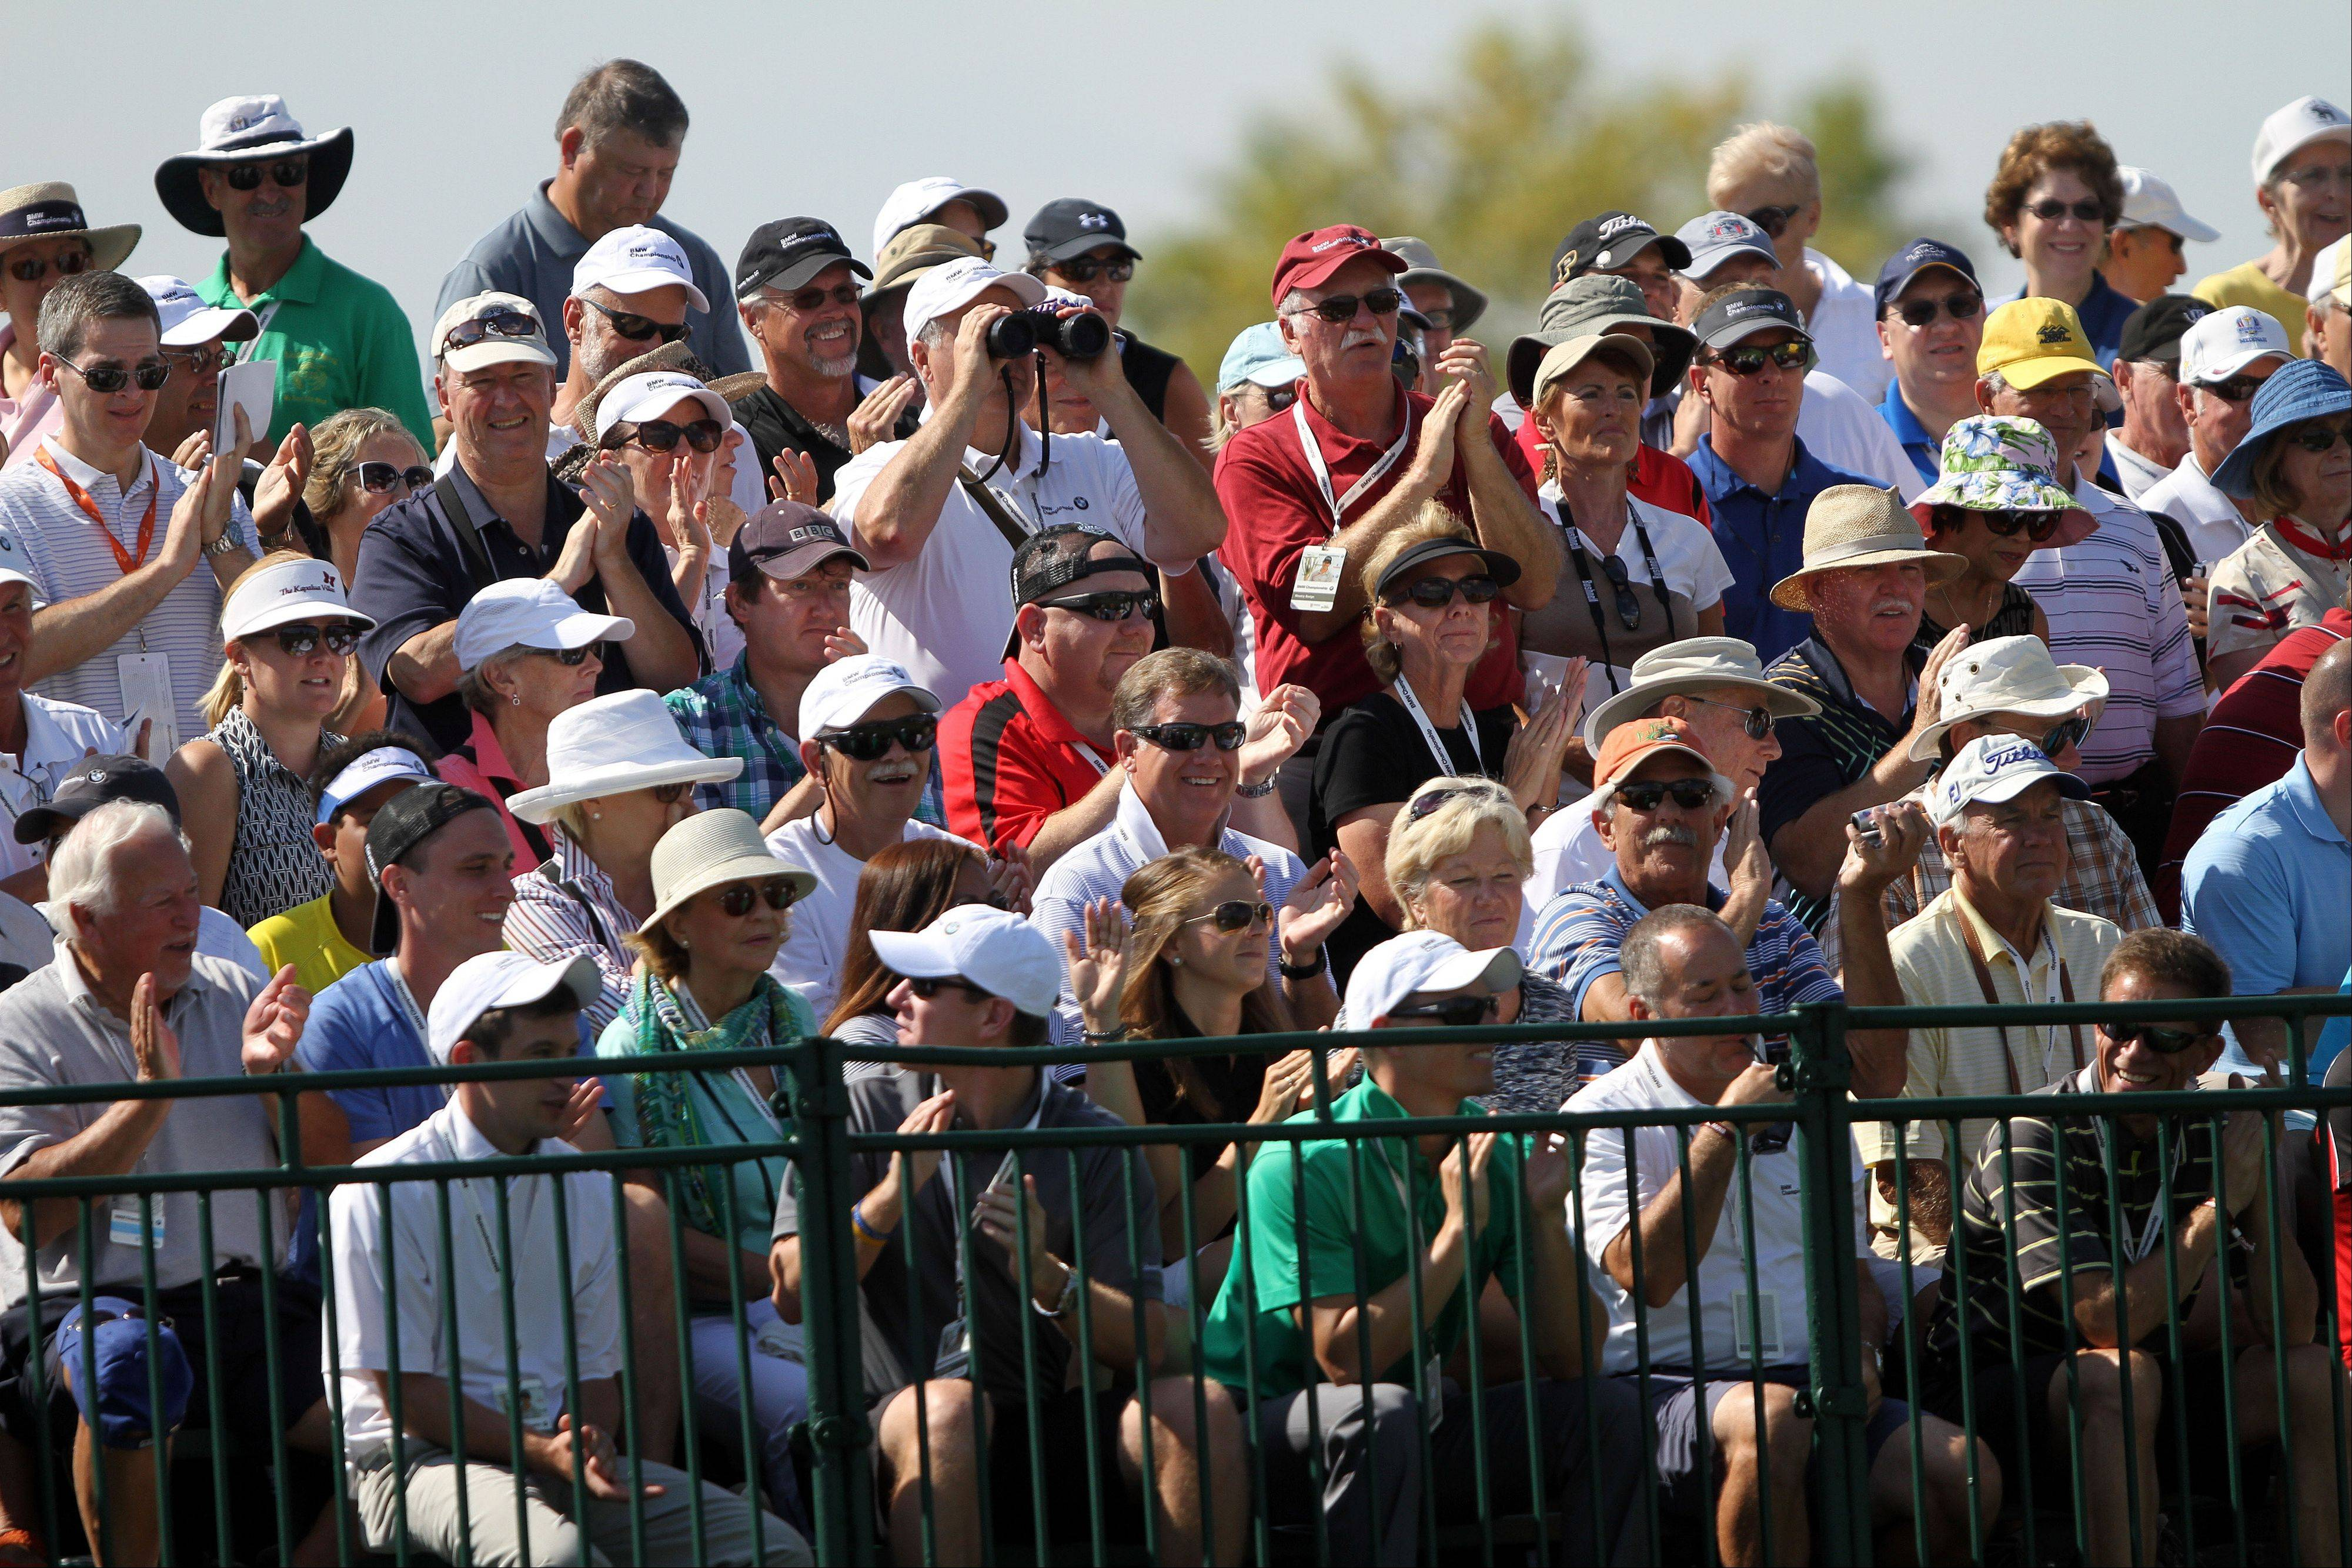 The crowd watches on the 12th hole.